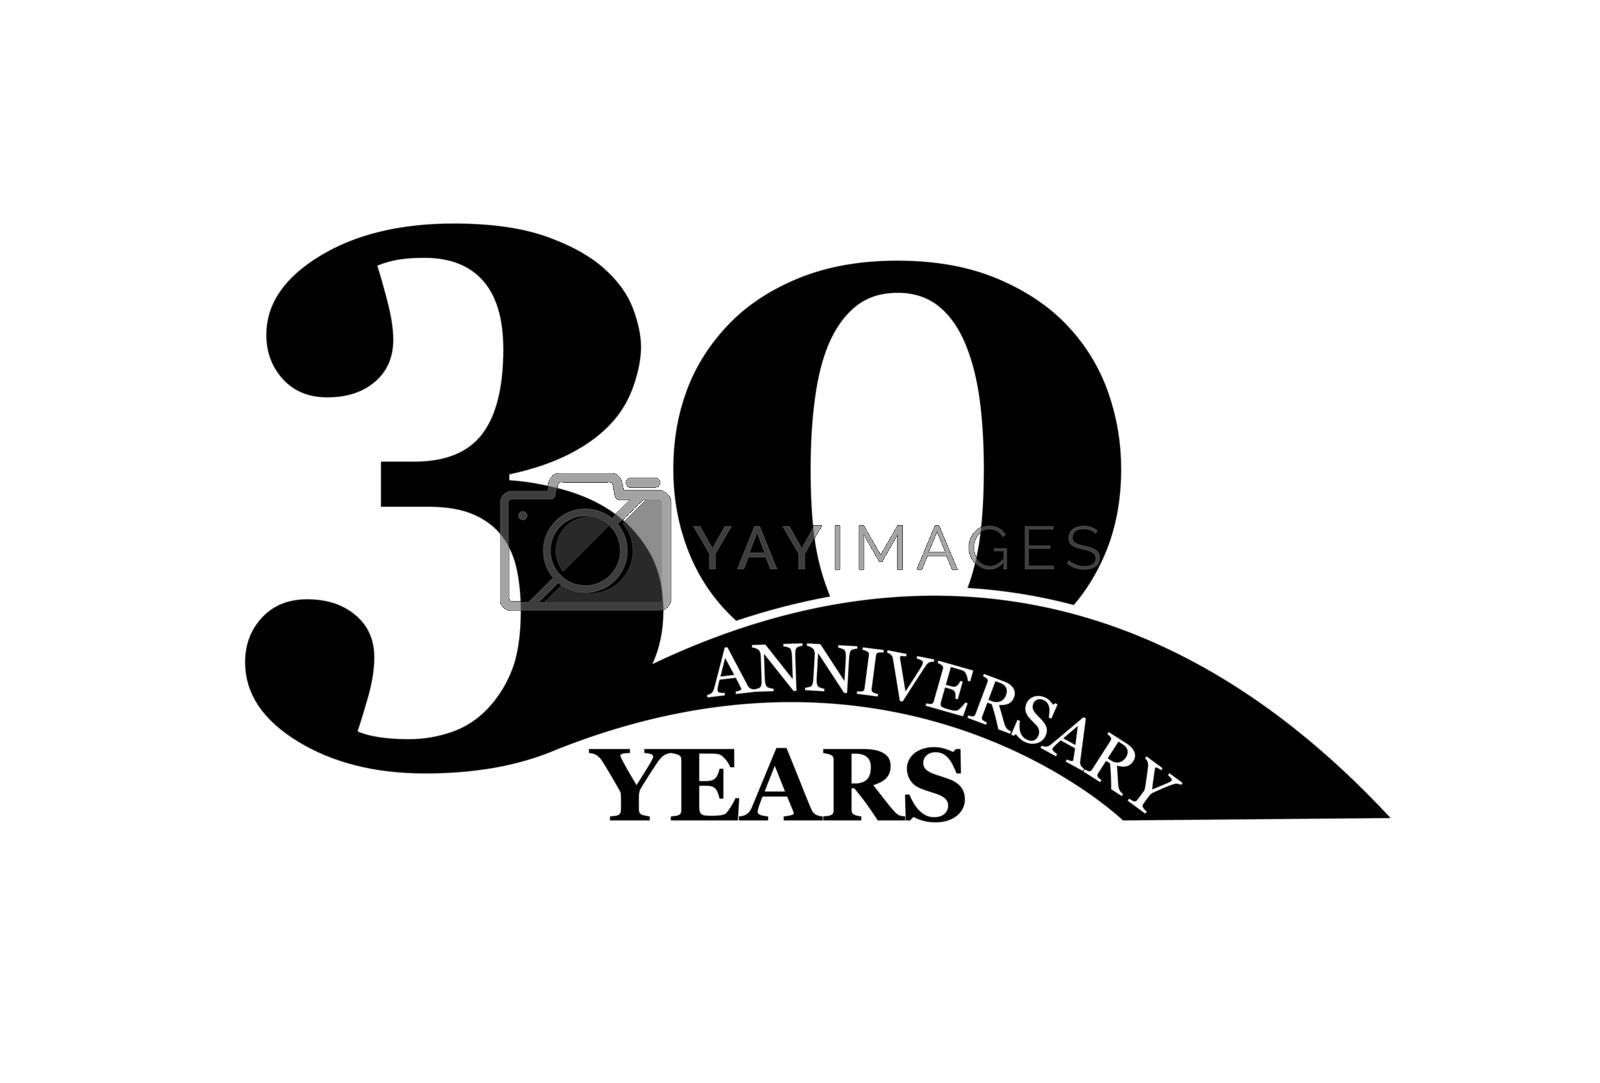 Royalty free image of 30 years anniversary, simple flat design, logo by Grommik